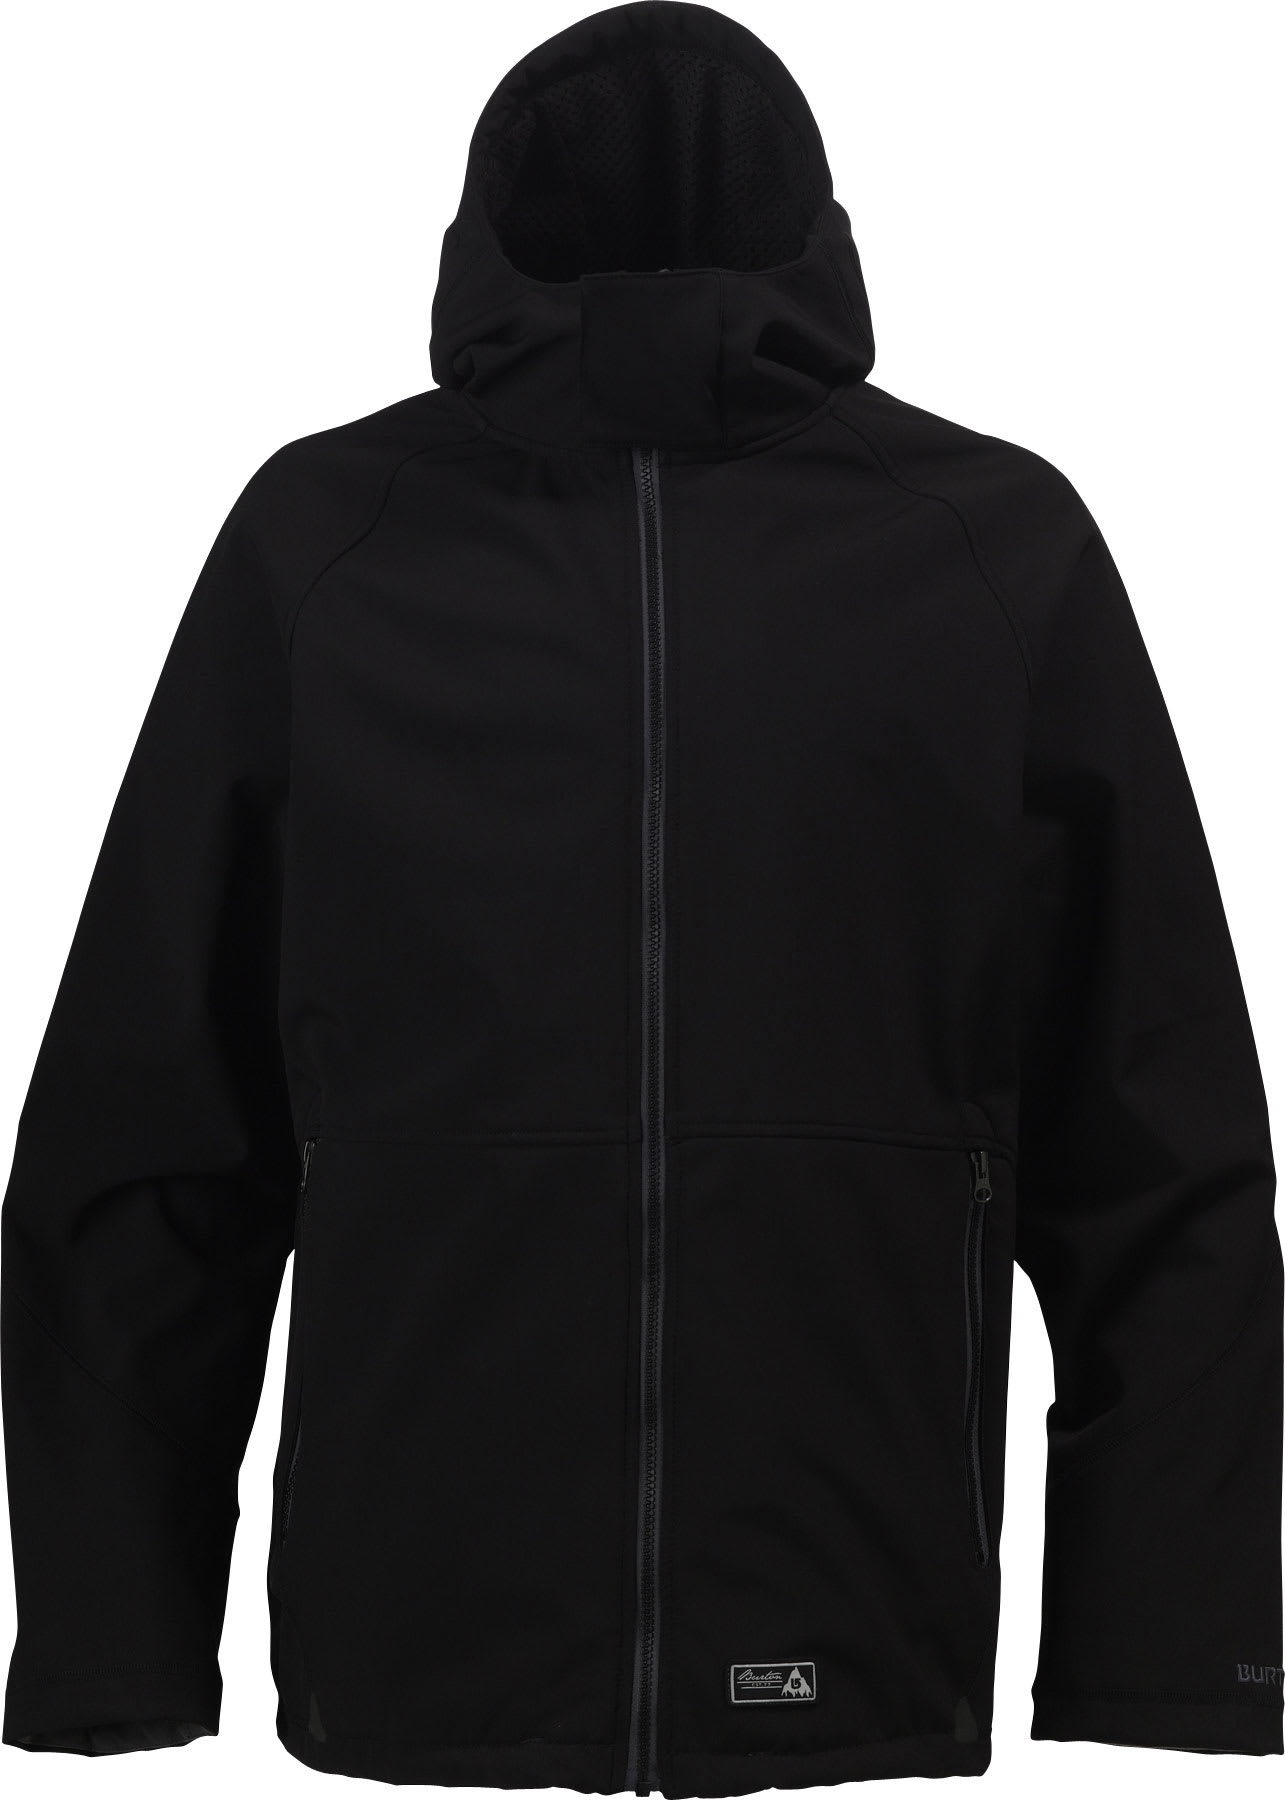 Shop for Burton Beacon Softshell Jacket True Black - Men's